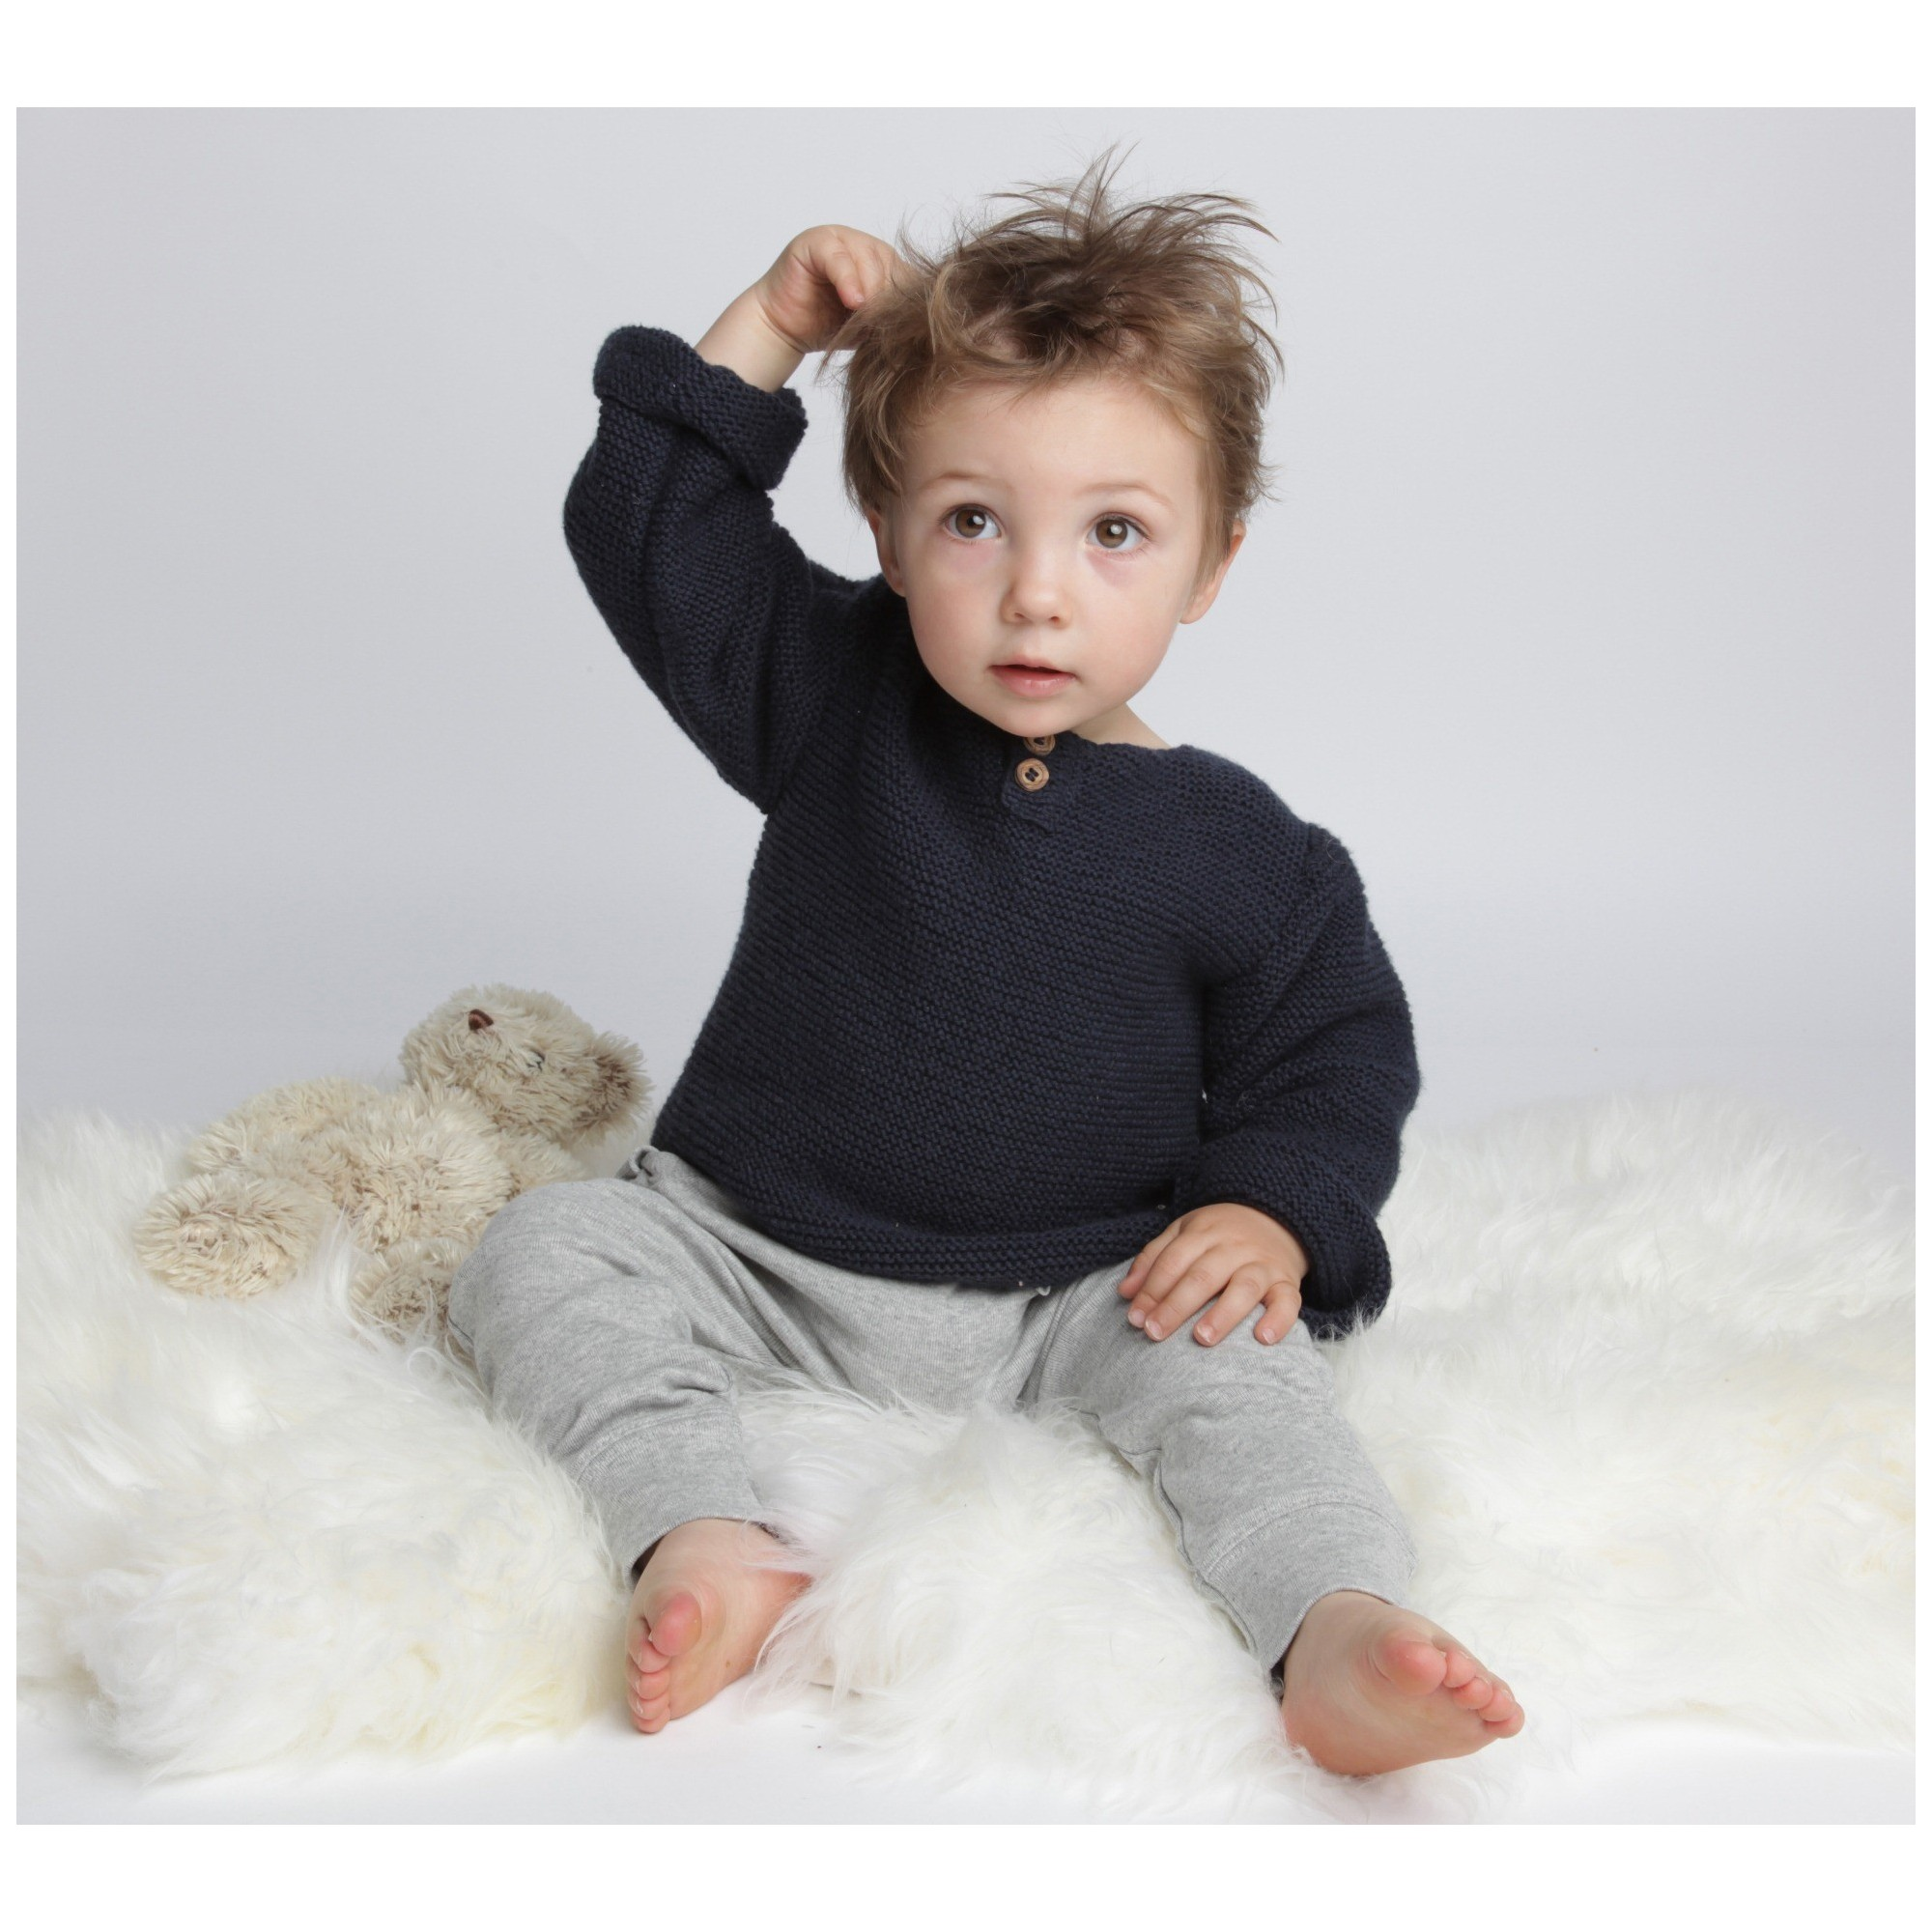 Natural white baby sweater in moss stitch made from cotton and cachemire with grey jogging